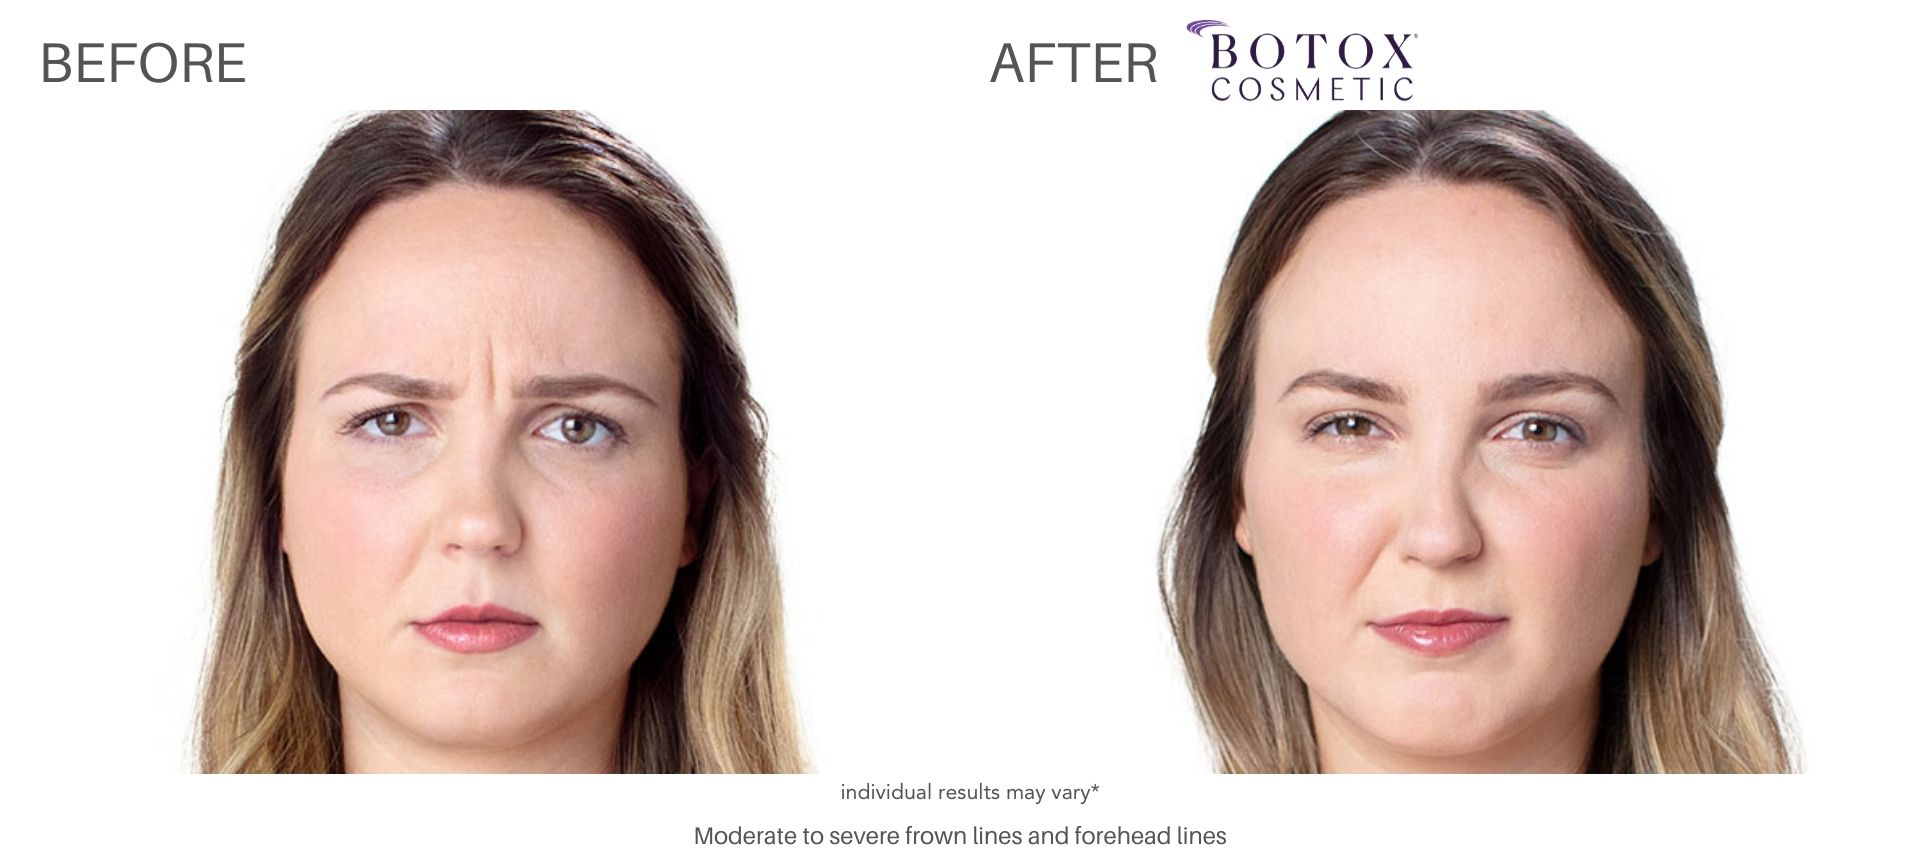 botox cosmetic treatment before and after Vernon Hills Ritacca Cosmetic Surgery